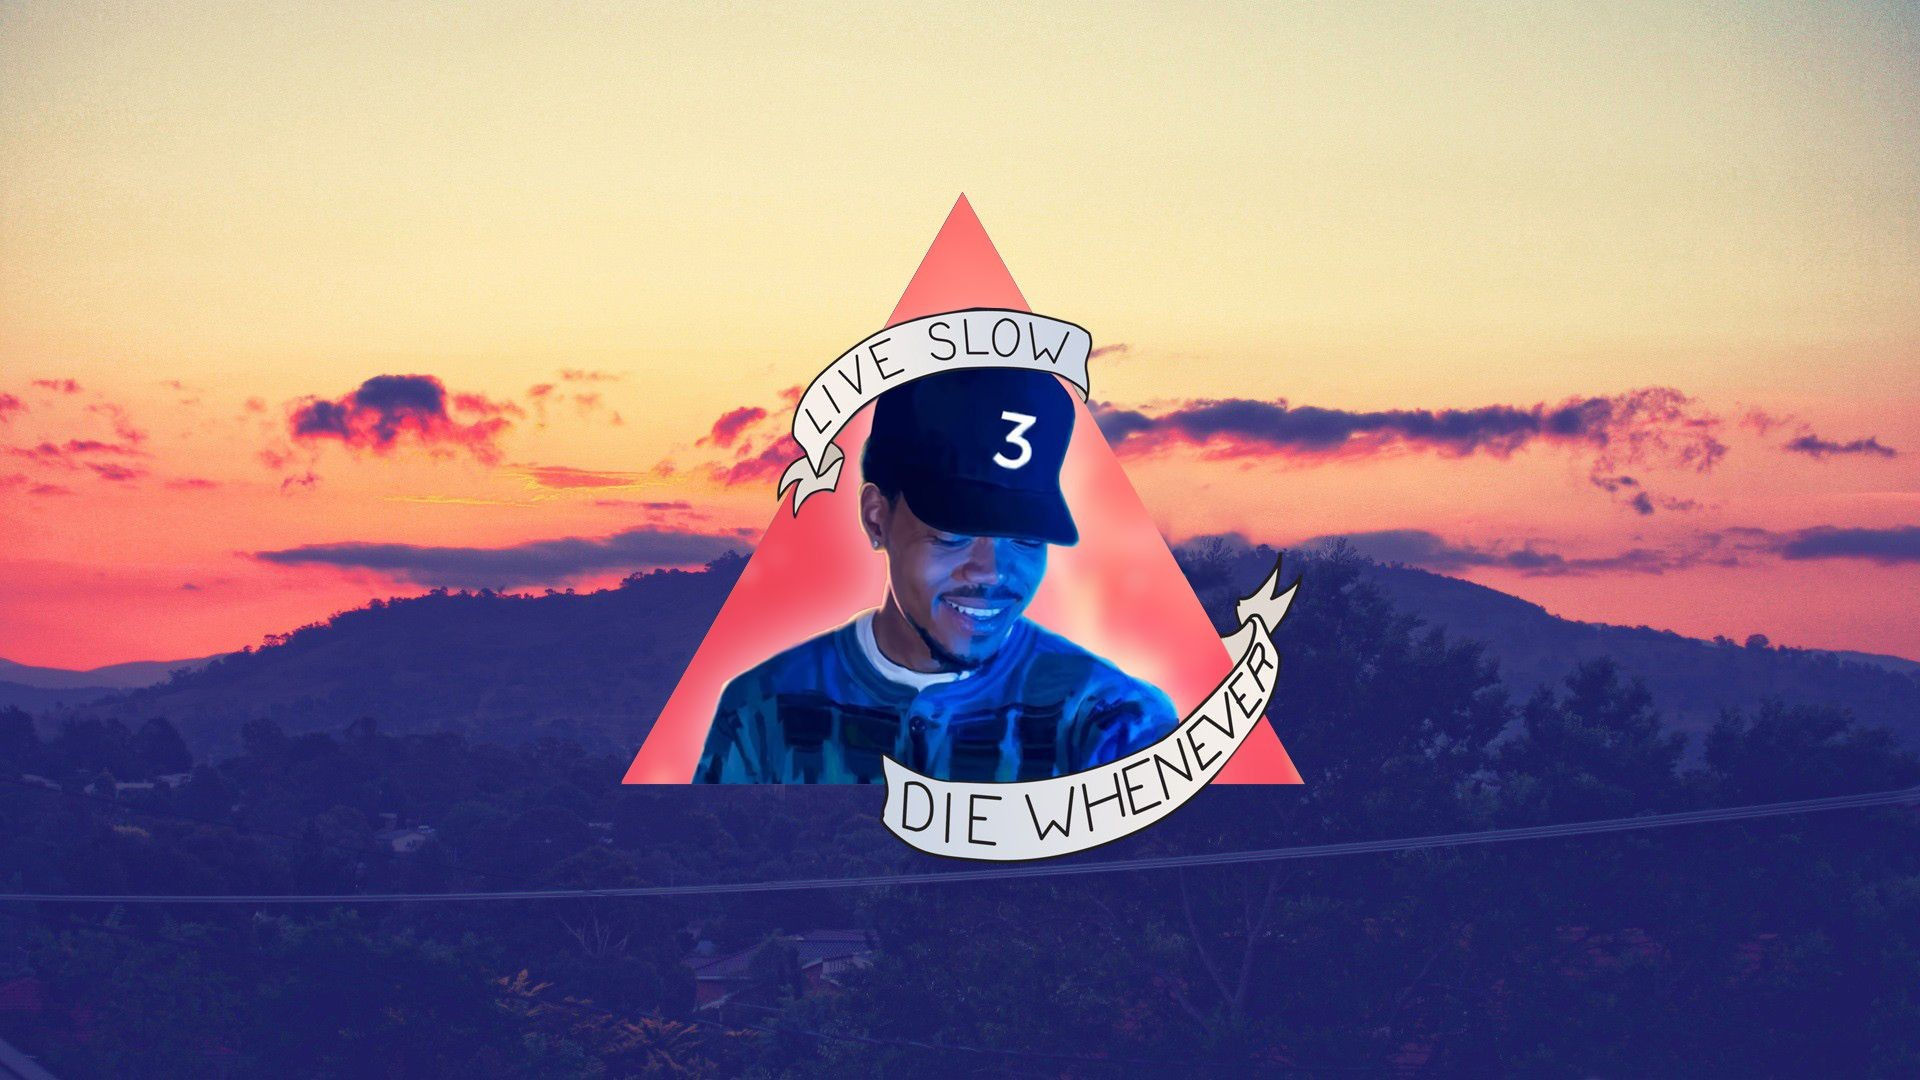 Chance The Rapper Wallpaper 1 Download Free Full HD Wallpapers For